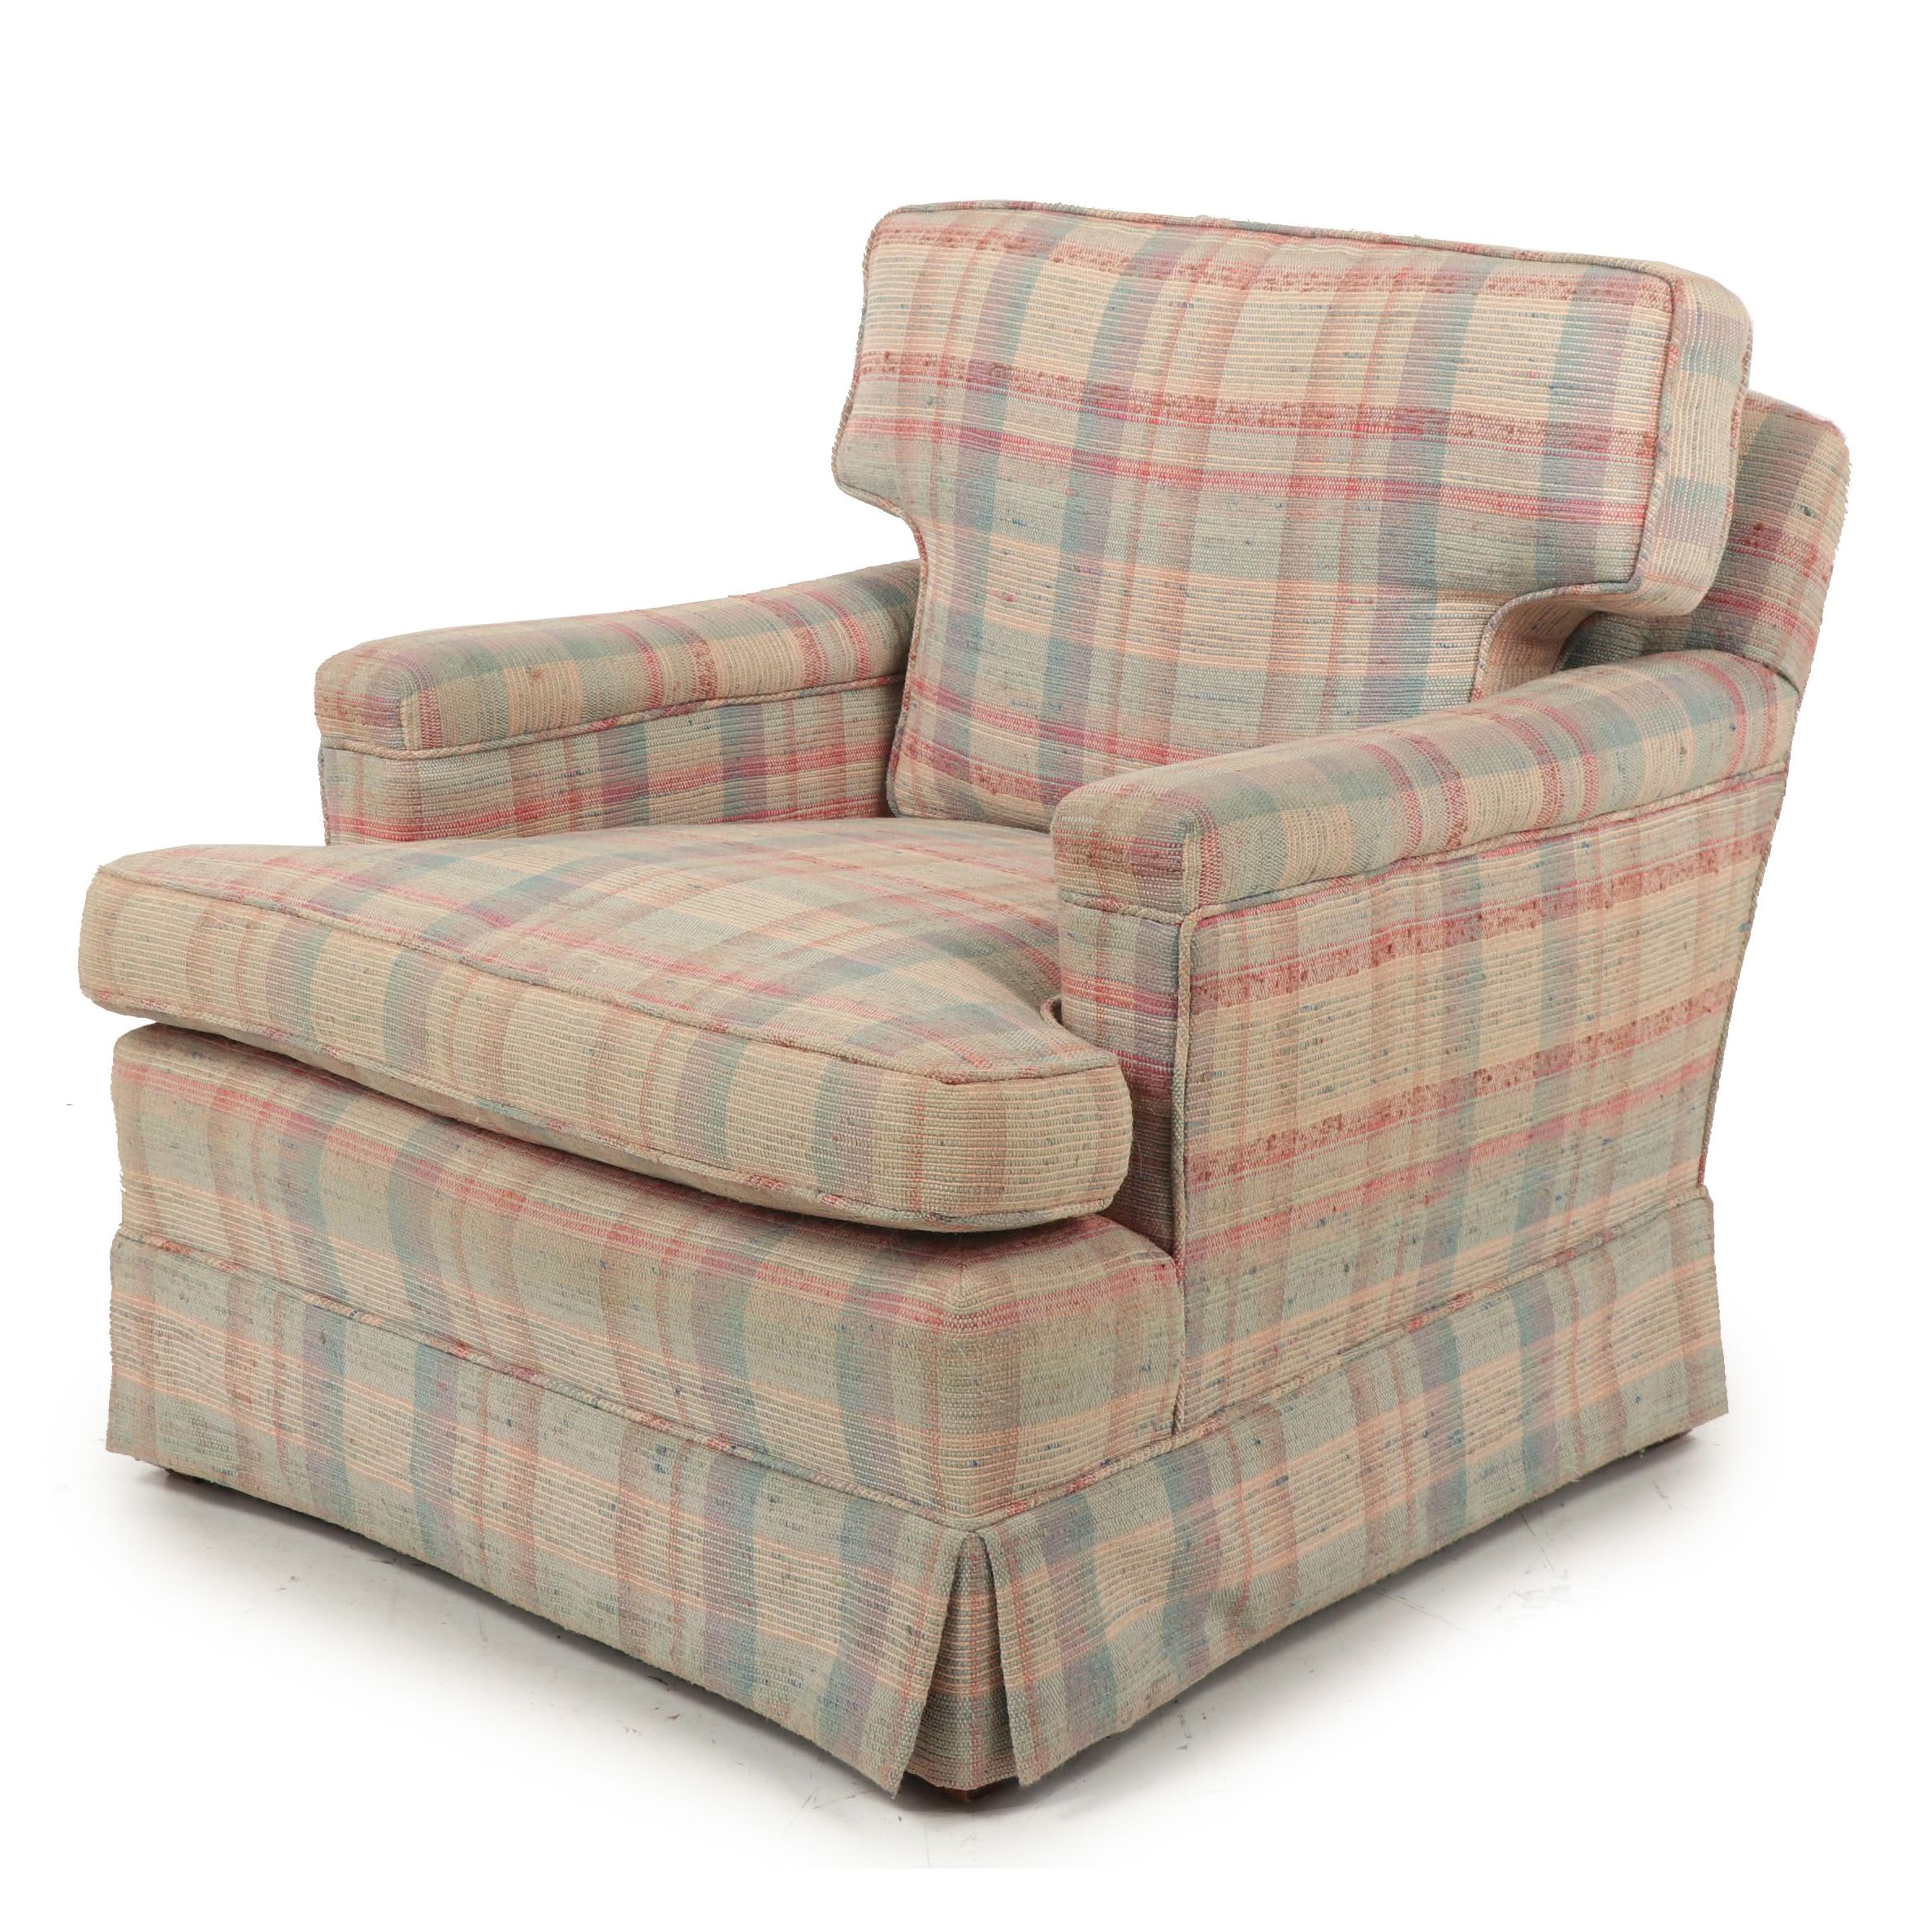 Upholstered Club Chair, Contemporary